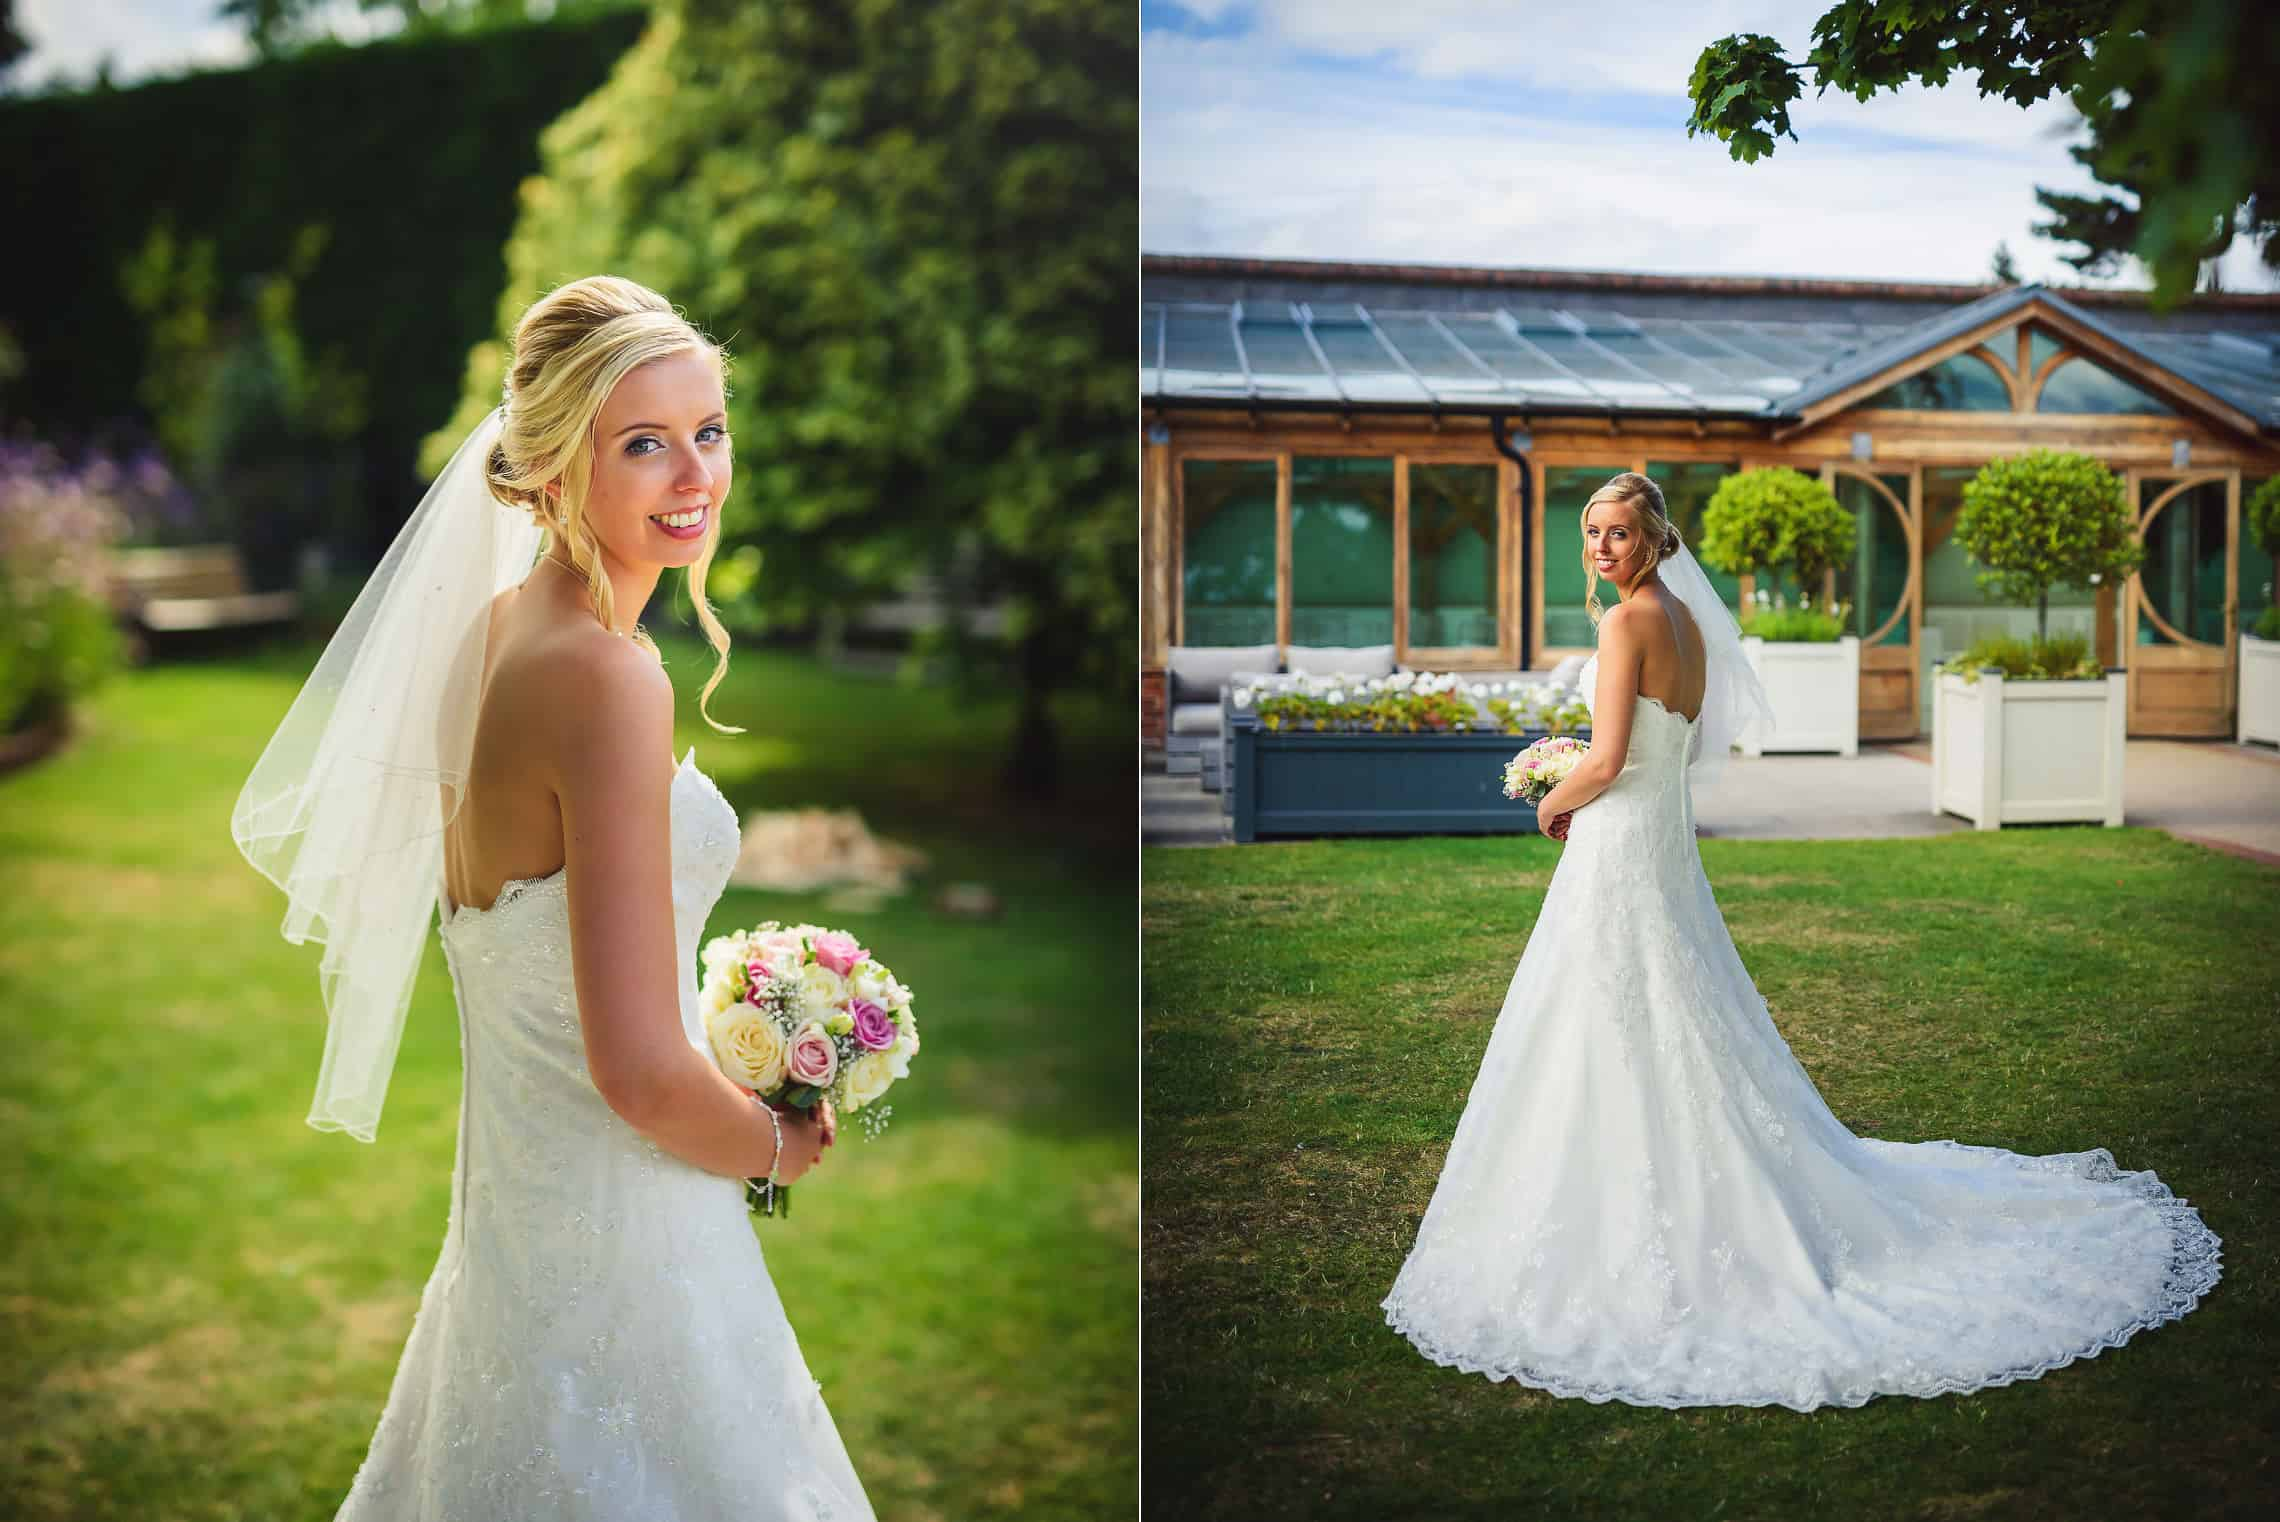 gaynes_park_wedding_lm_justin_bailey_photography_010